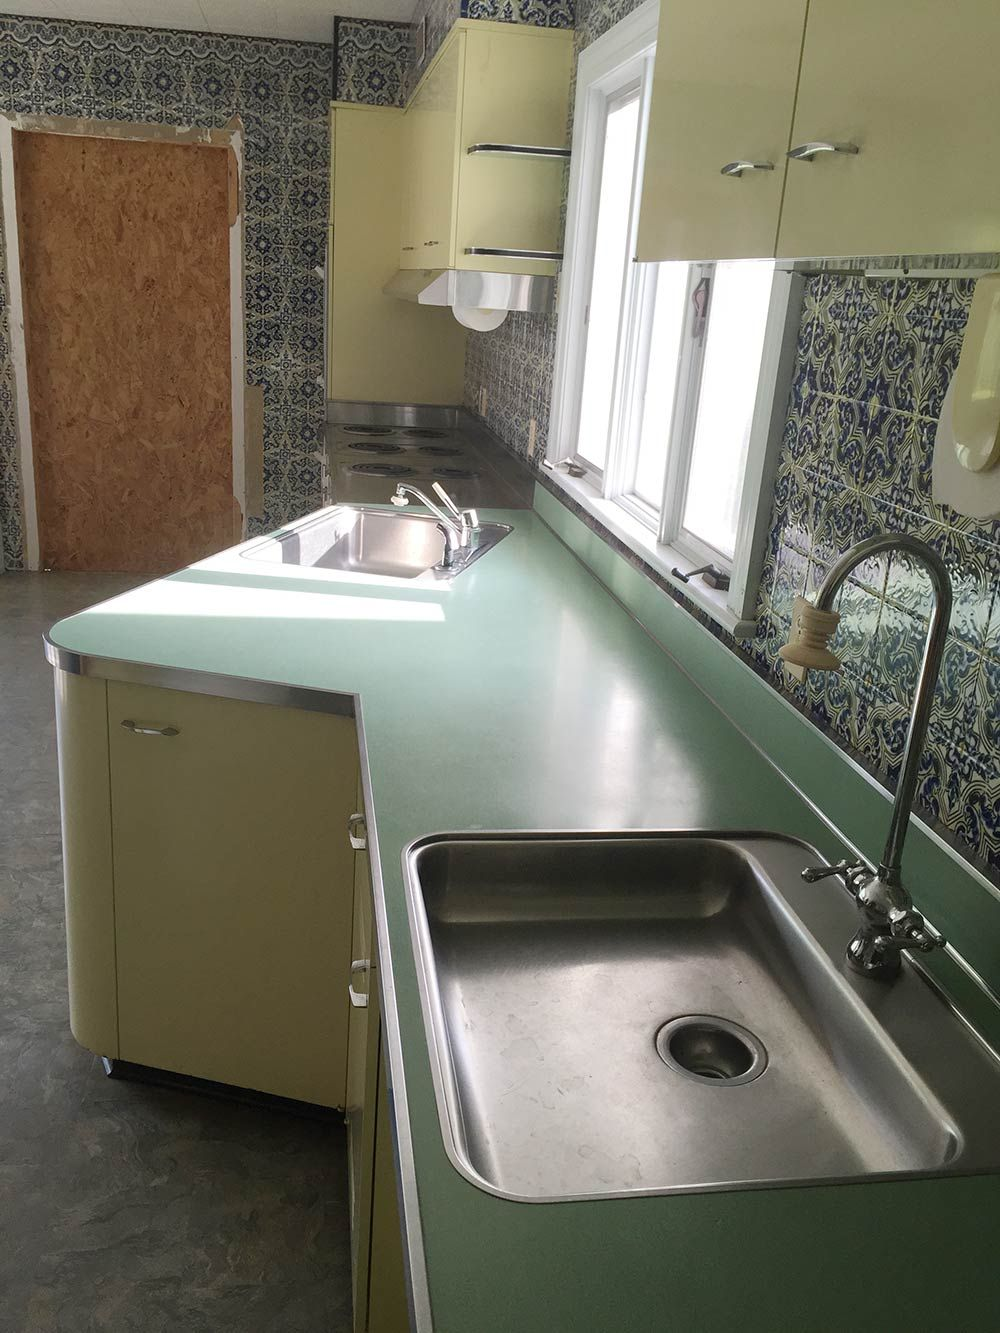 Vintage St Charles Kitchen Cabinets With Thermador Ovens And Lots More Outdoor Kitchen Cabinets Kitchen Cabinets Vintage Cabinets